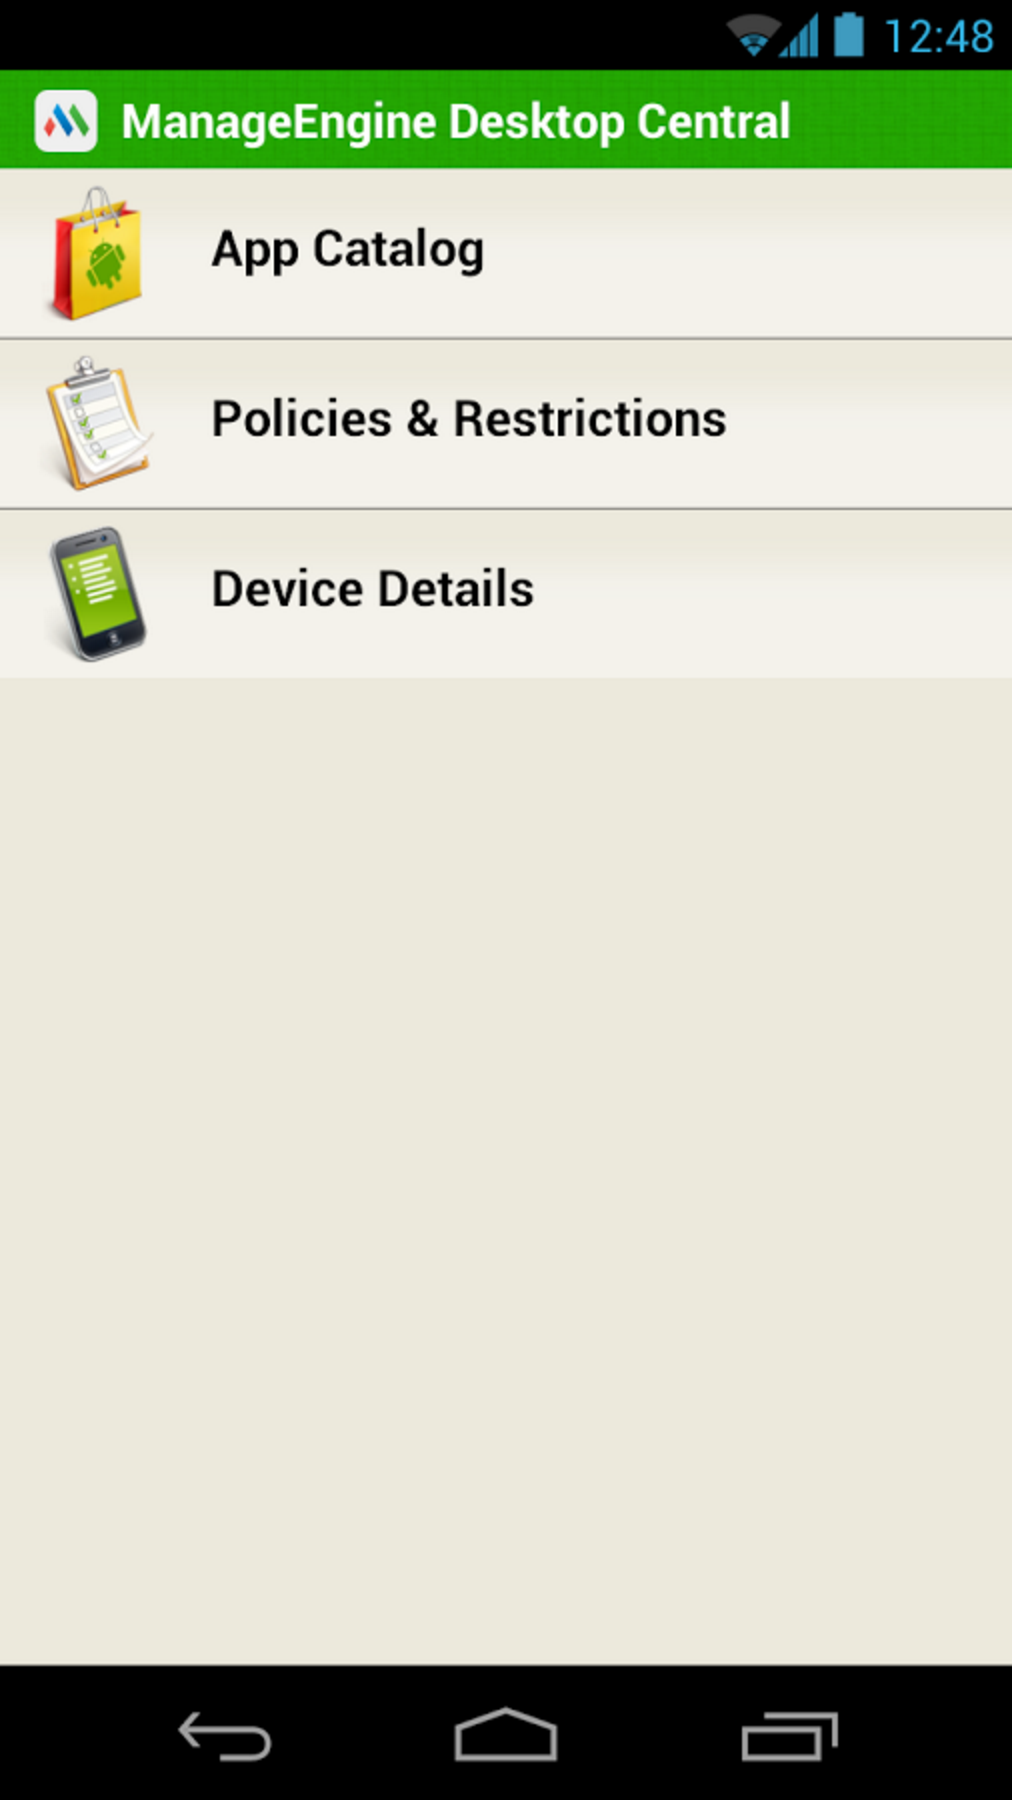 The MDM app downloads with an App Catalog, Policies and Restrictions and carries the necessary device details a user needs to know.